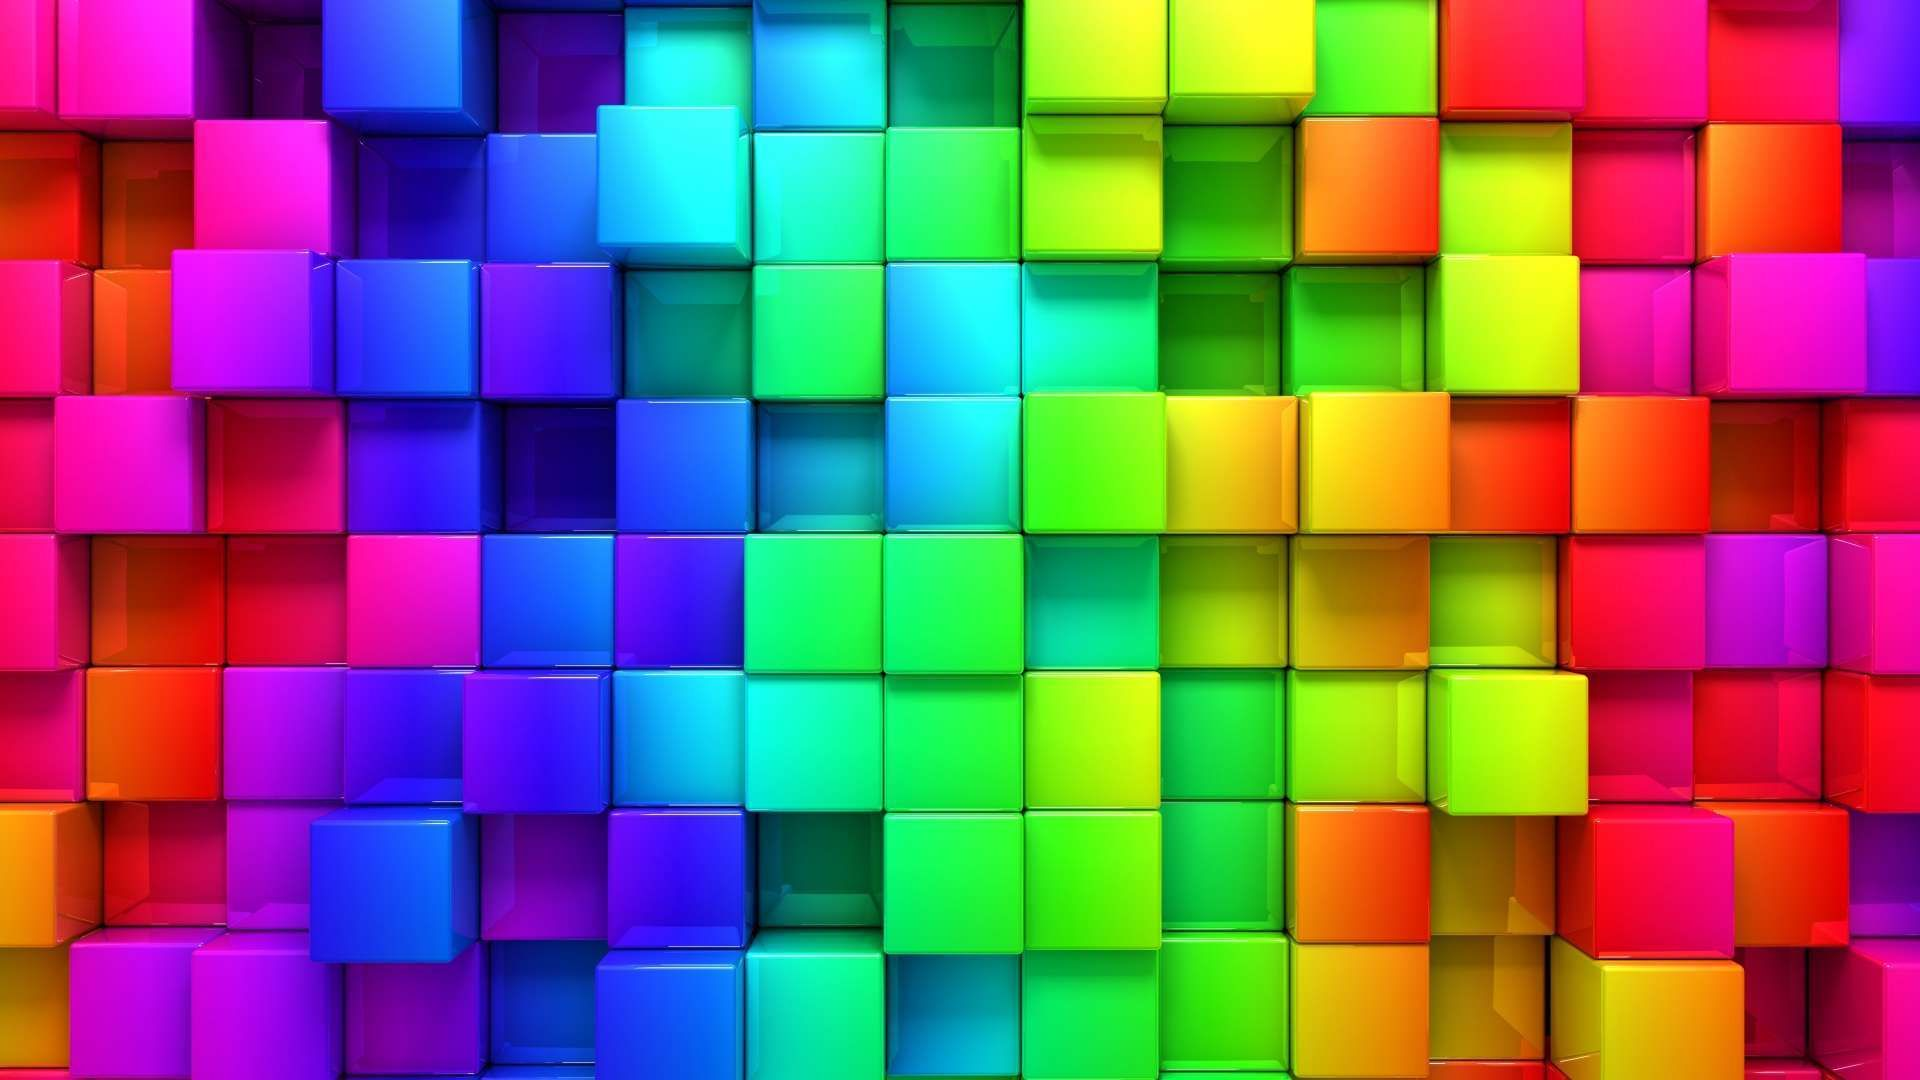 blocks rainbow graphics background hd wallpaper hdwallwide 1920x1080px